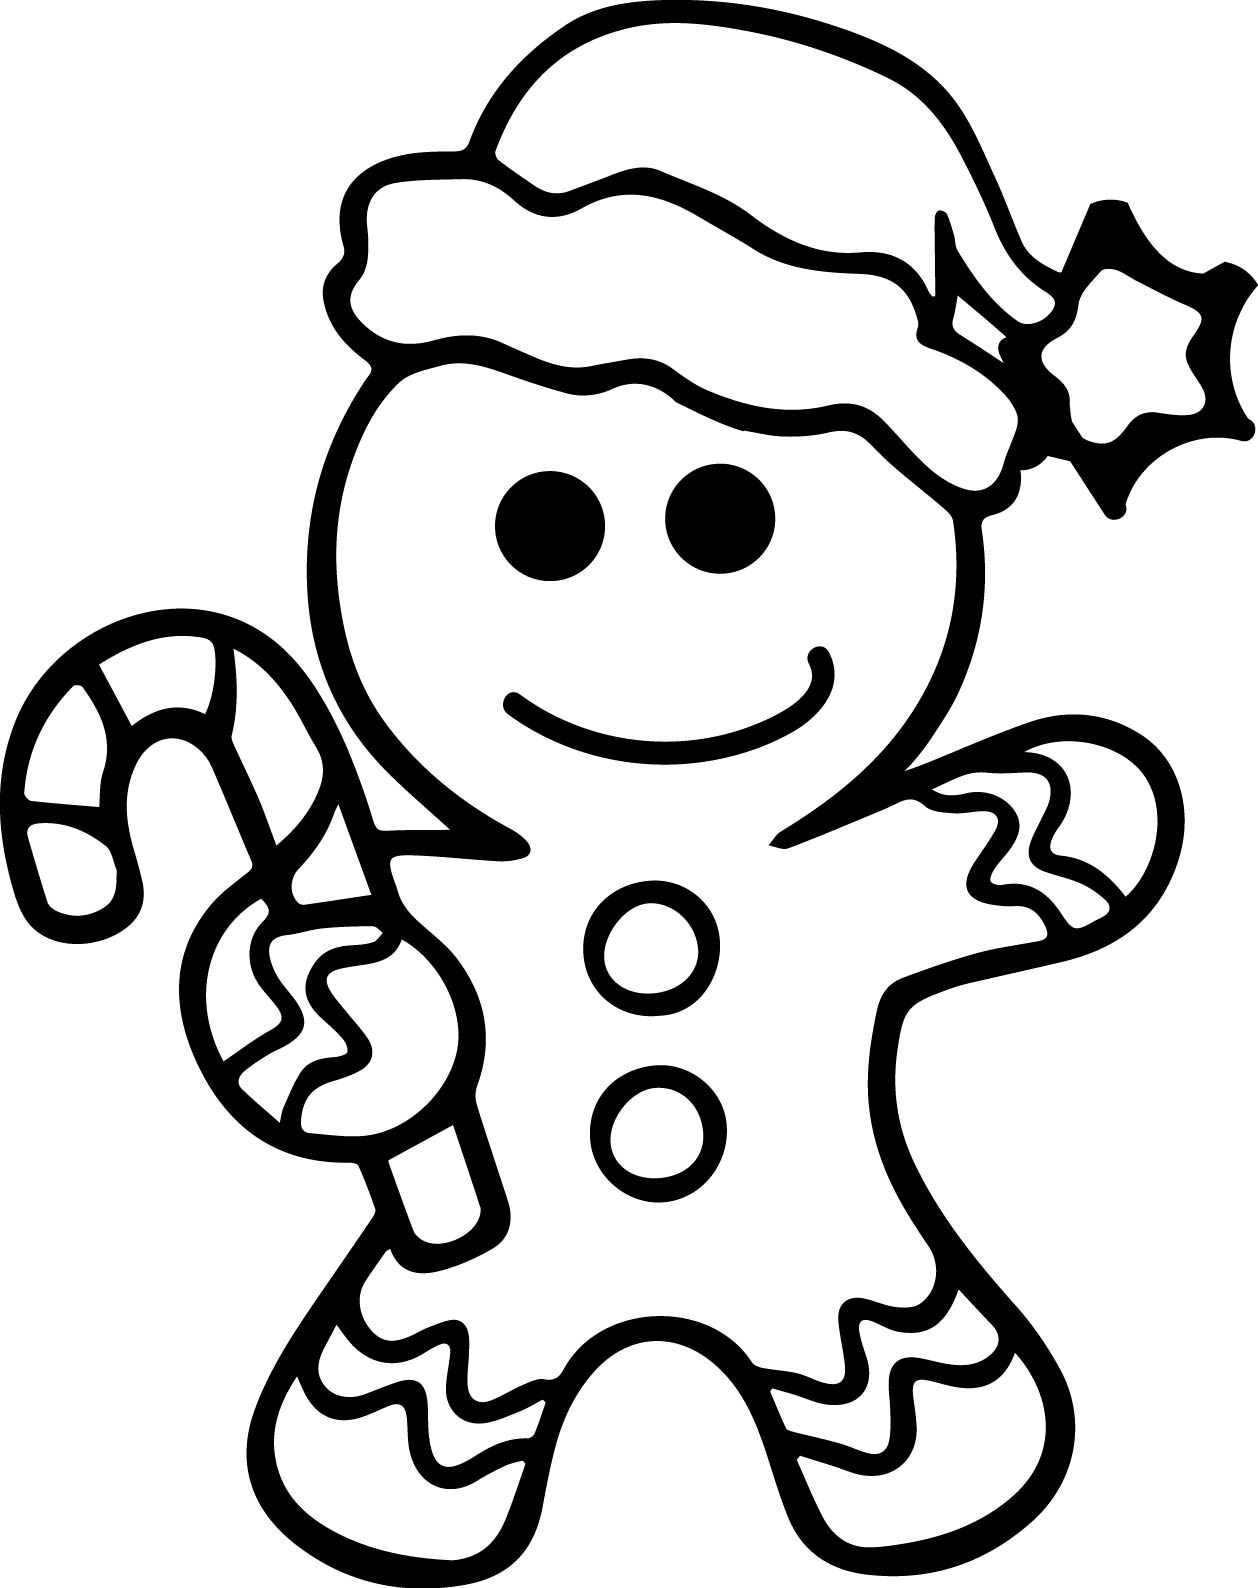 Printable Christmas Cookie Coloring Pages With Legyelamagadura Com Resume Cover Letter Samples